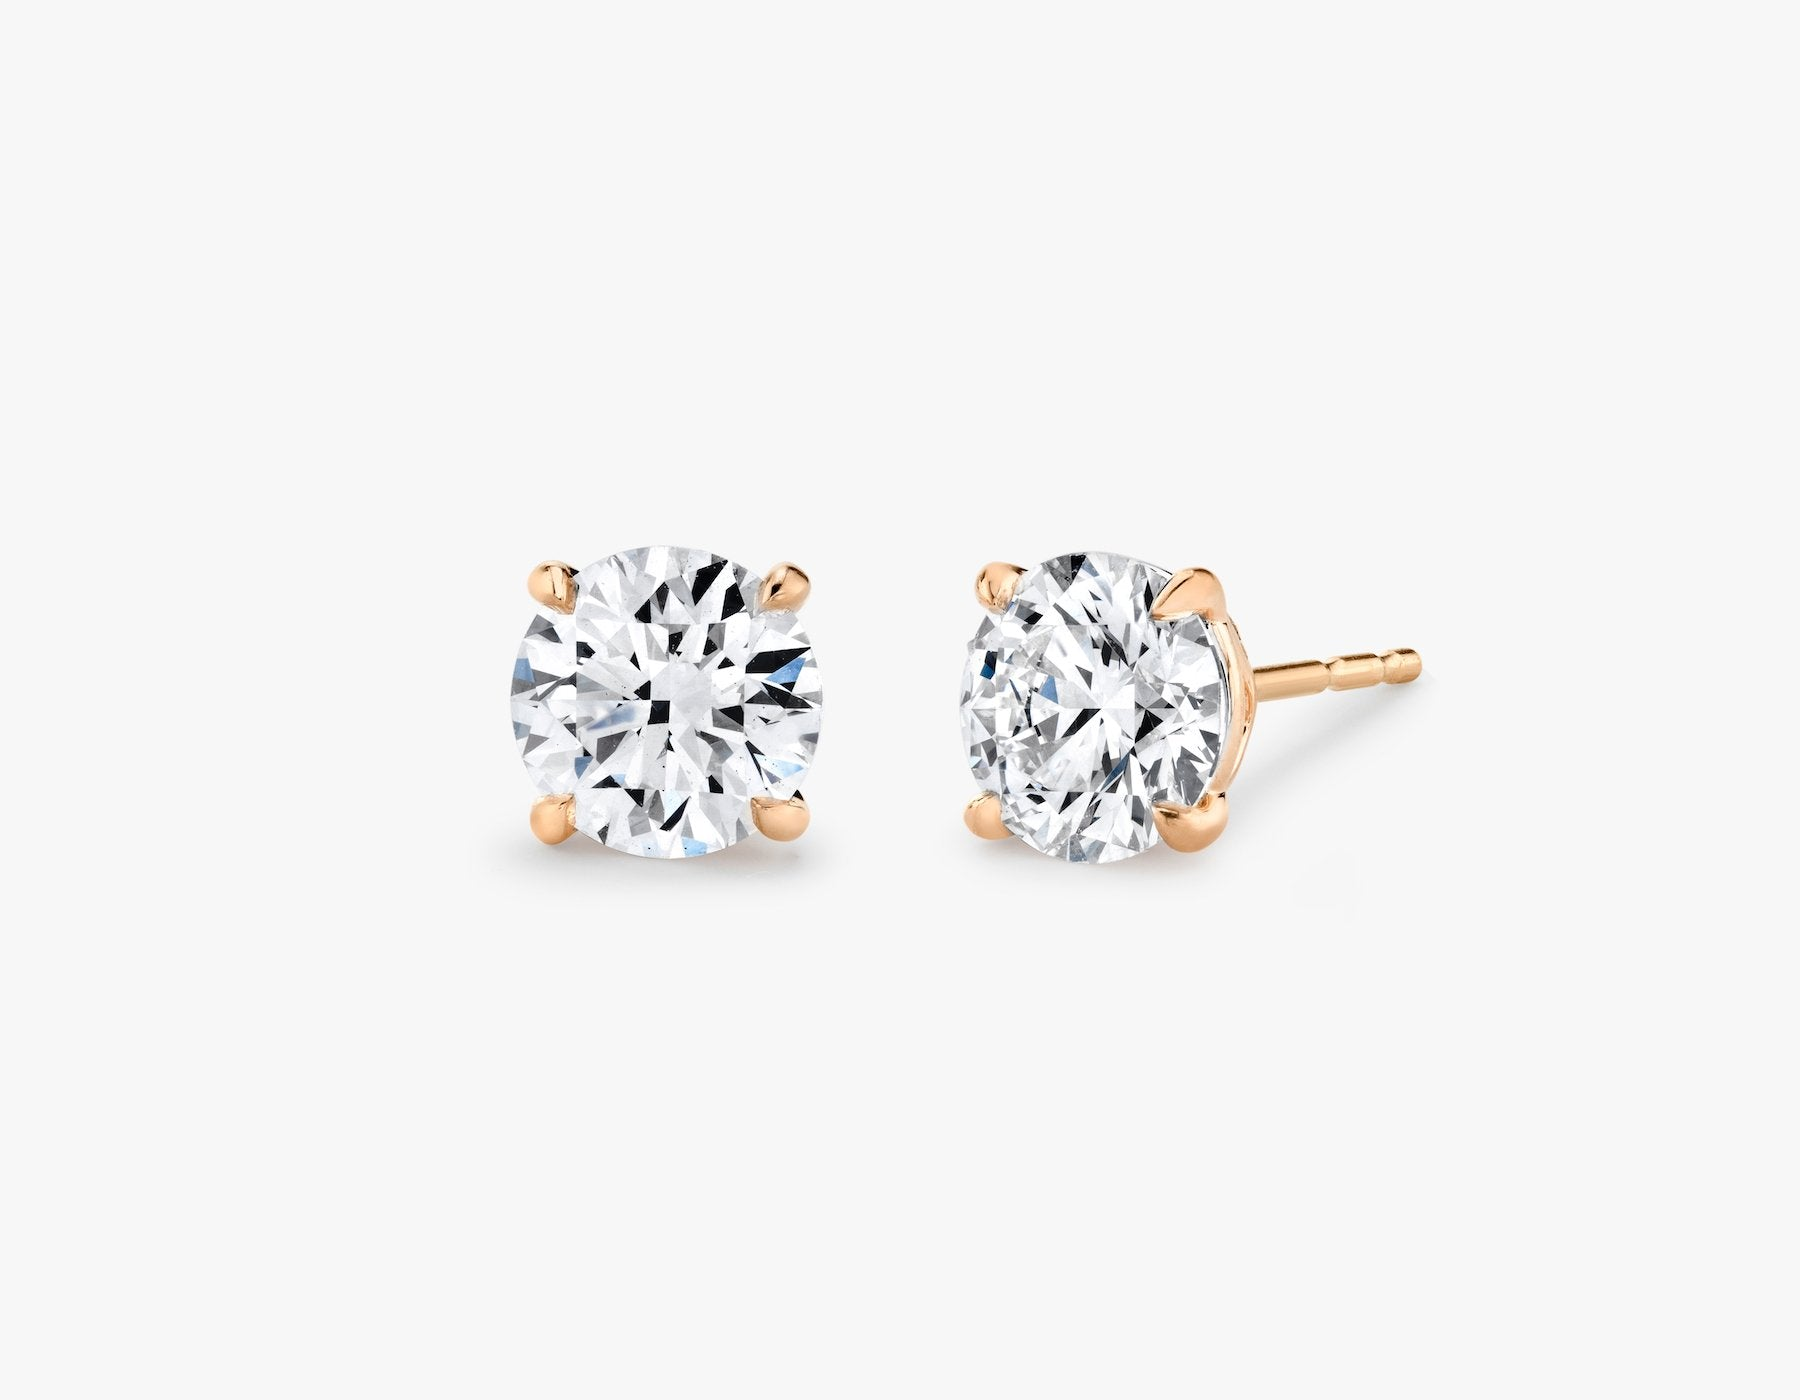 Vrai 14K solid gold solitaire round brilliant diamond studs earrings 1ct minimalist delicate, 14K Rose Gold